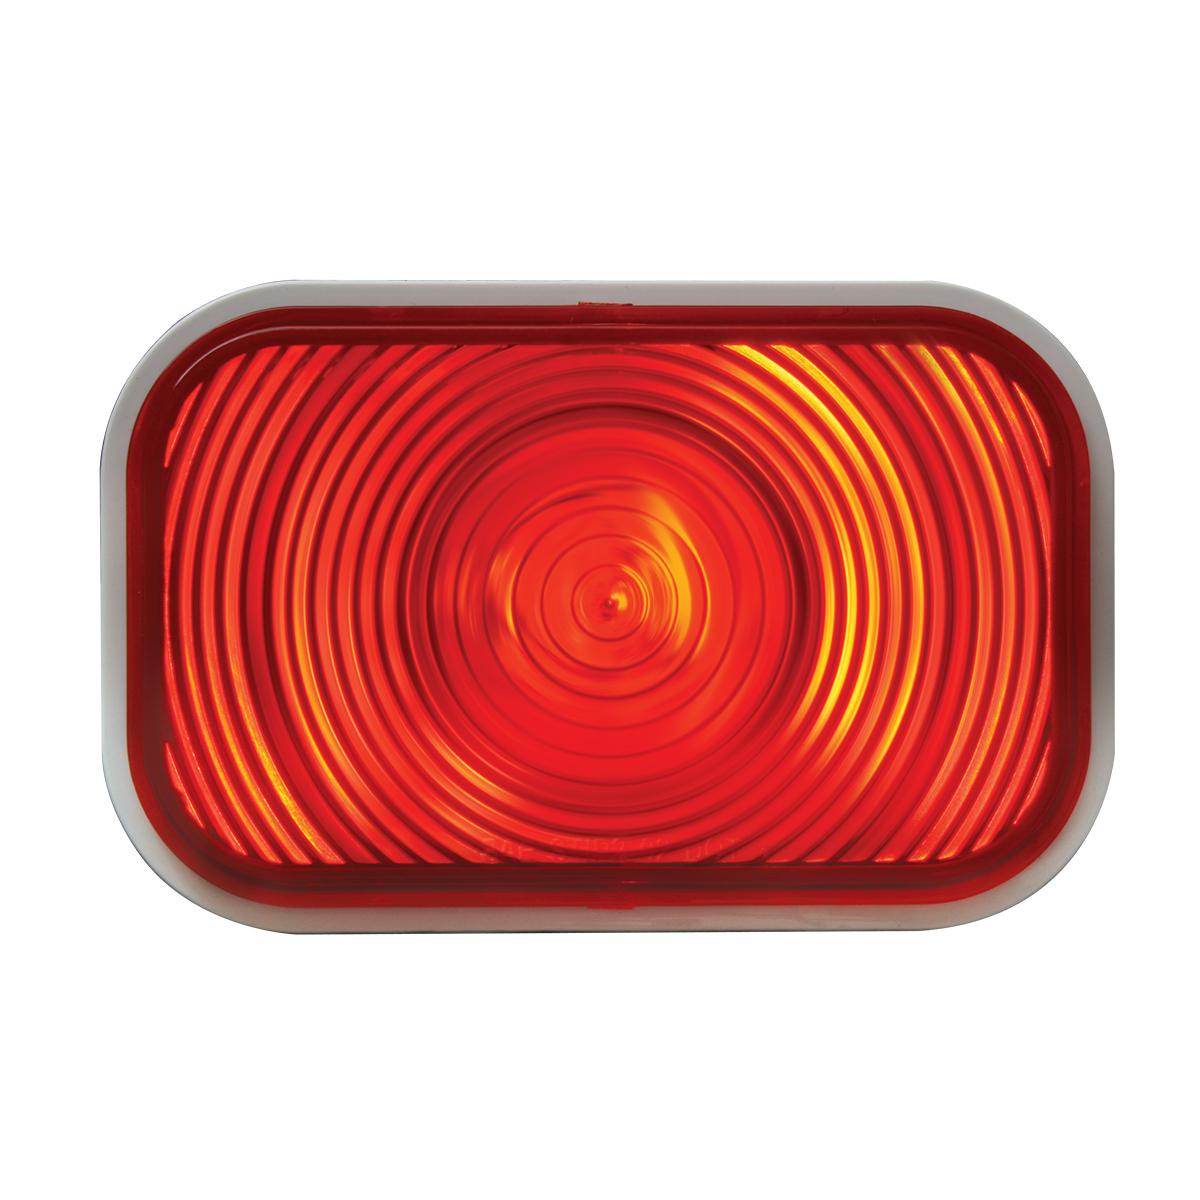 #80785 Incandescent Flat - Red/Red